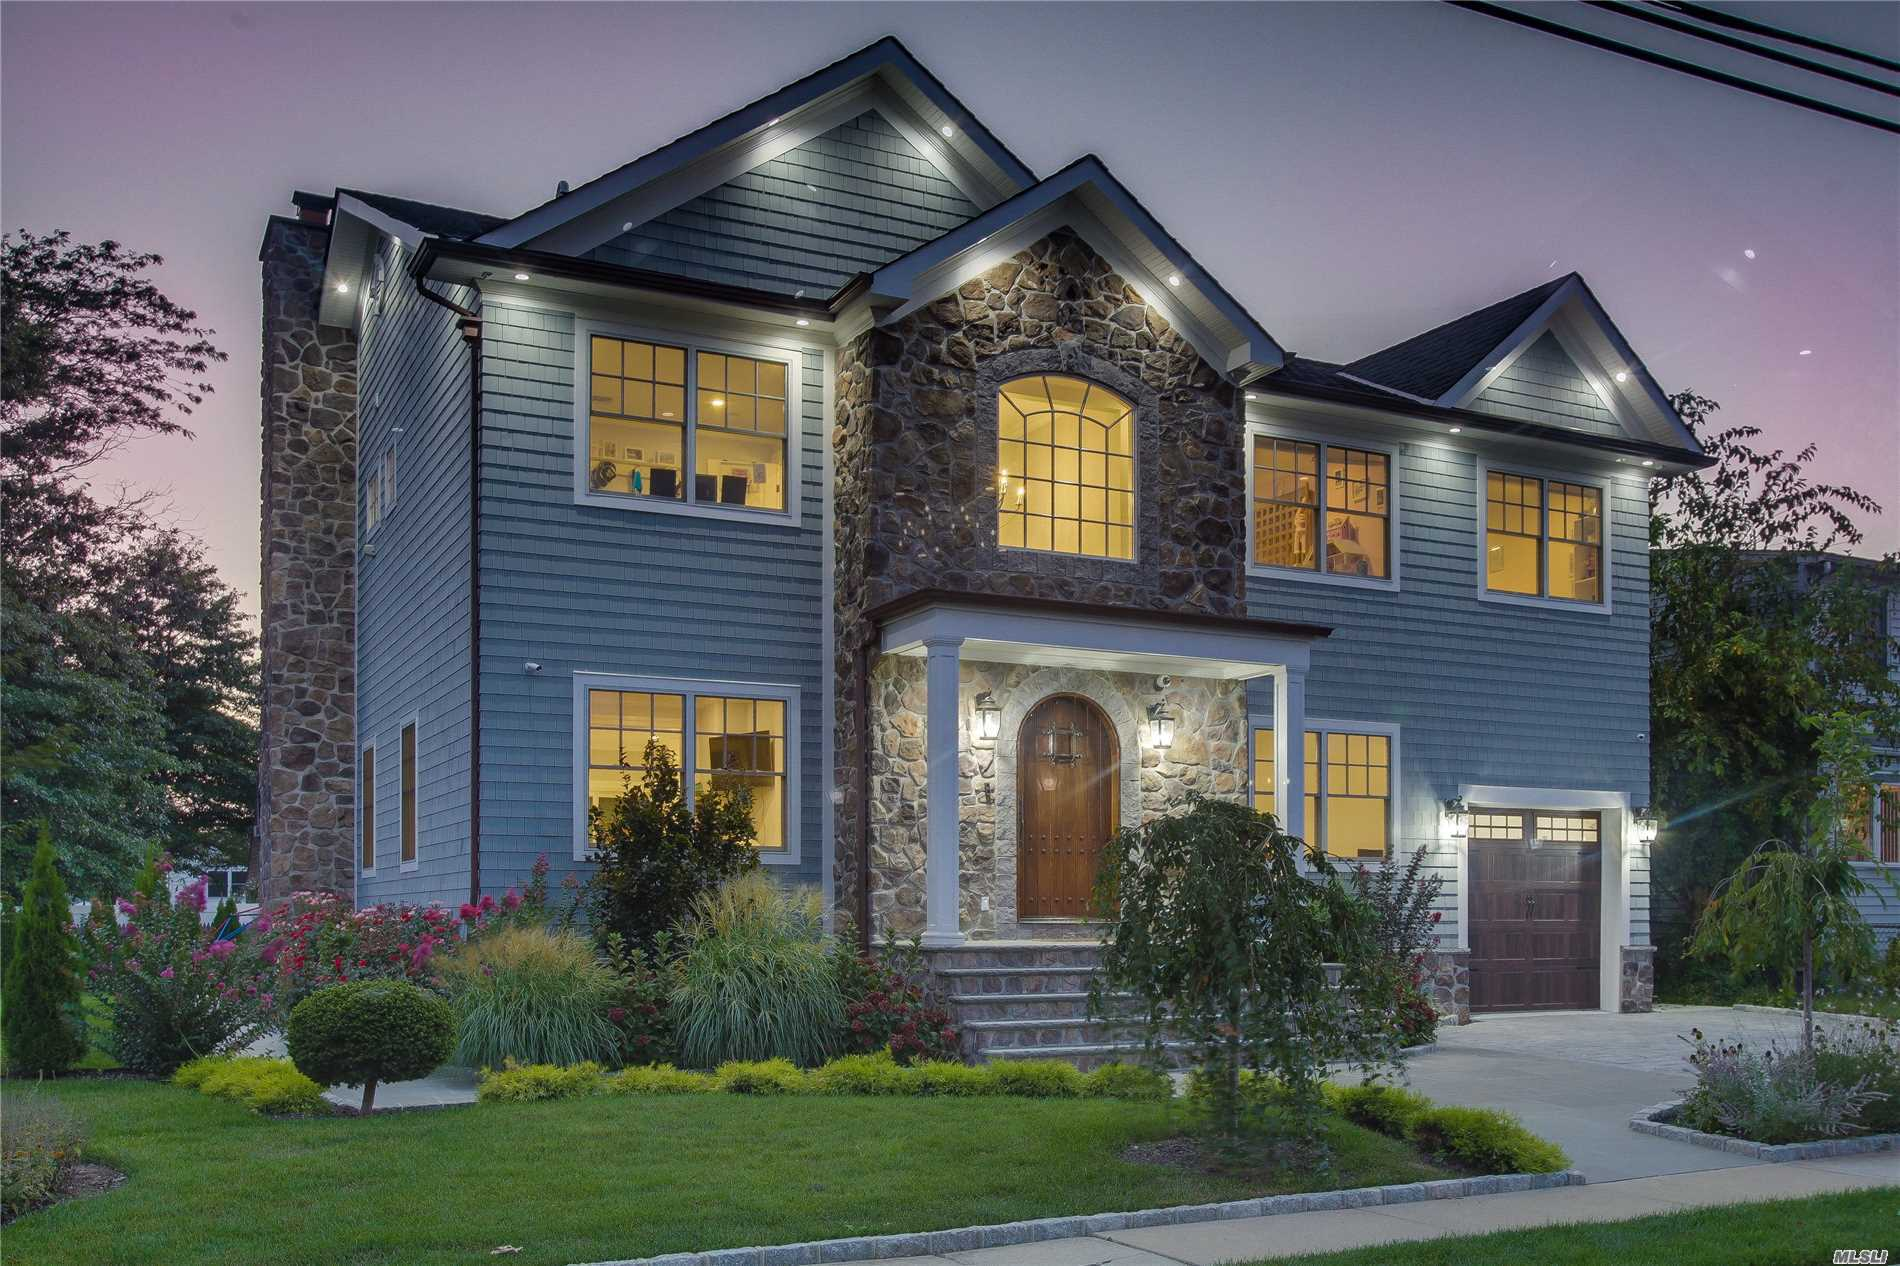 Luxury Is Redefined In This 3, 600 Sq. Ft. Custom Built Home In Wantagh's Mandalay Bay Community. High-End Kitchen, Master Suite W/ Private Terrace, Huge Bathroom, Walk-In Closets & Private Home Office. Large Family & Living Room W/ Wood Burning Fireplace, Crown Moldings & Coffered Ceilings In Formal Dining Room. Custom Landscape Lighting, Spacious Backyard W/ Elegant Finishes.